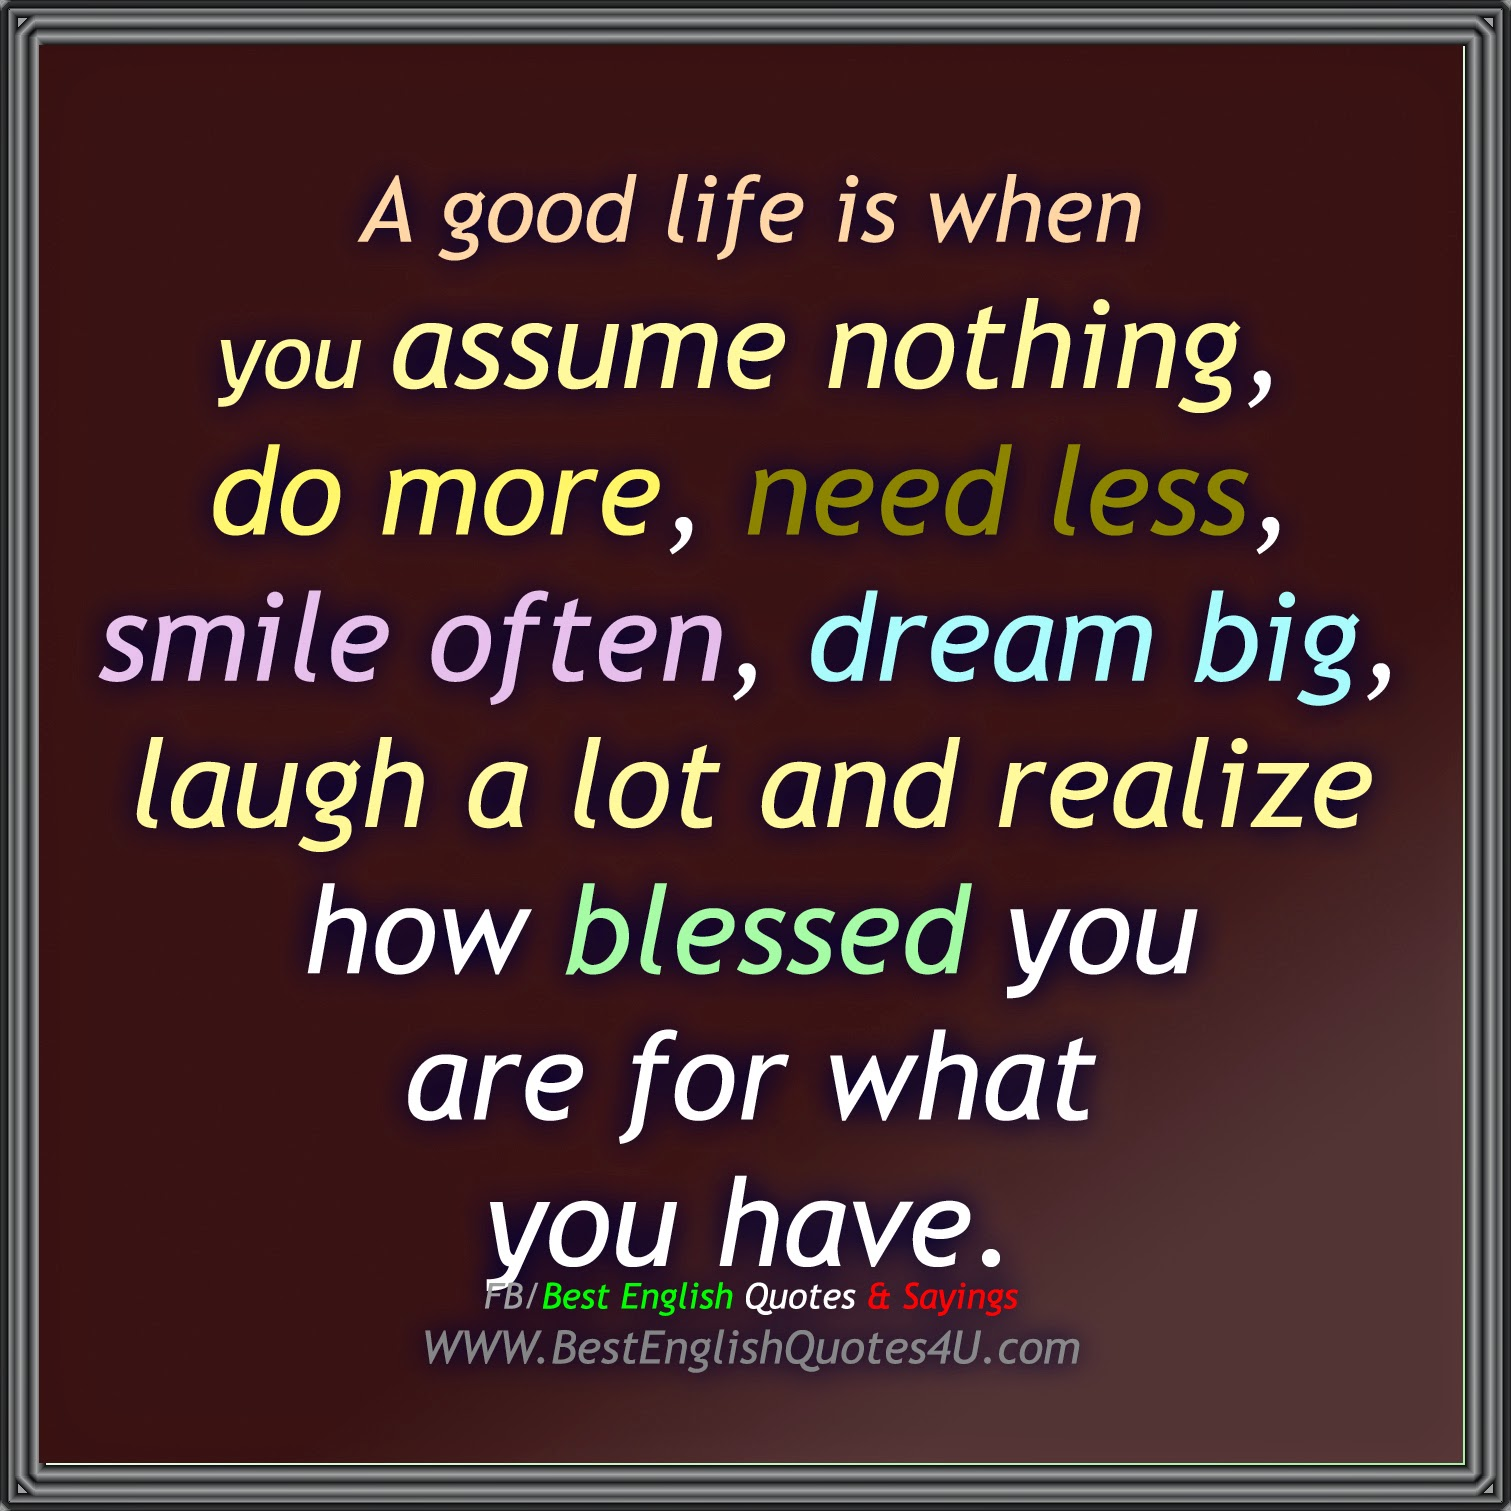 Good Life Quotes A Good Life Is When You Best'english'quotes'&'sayings